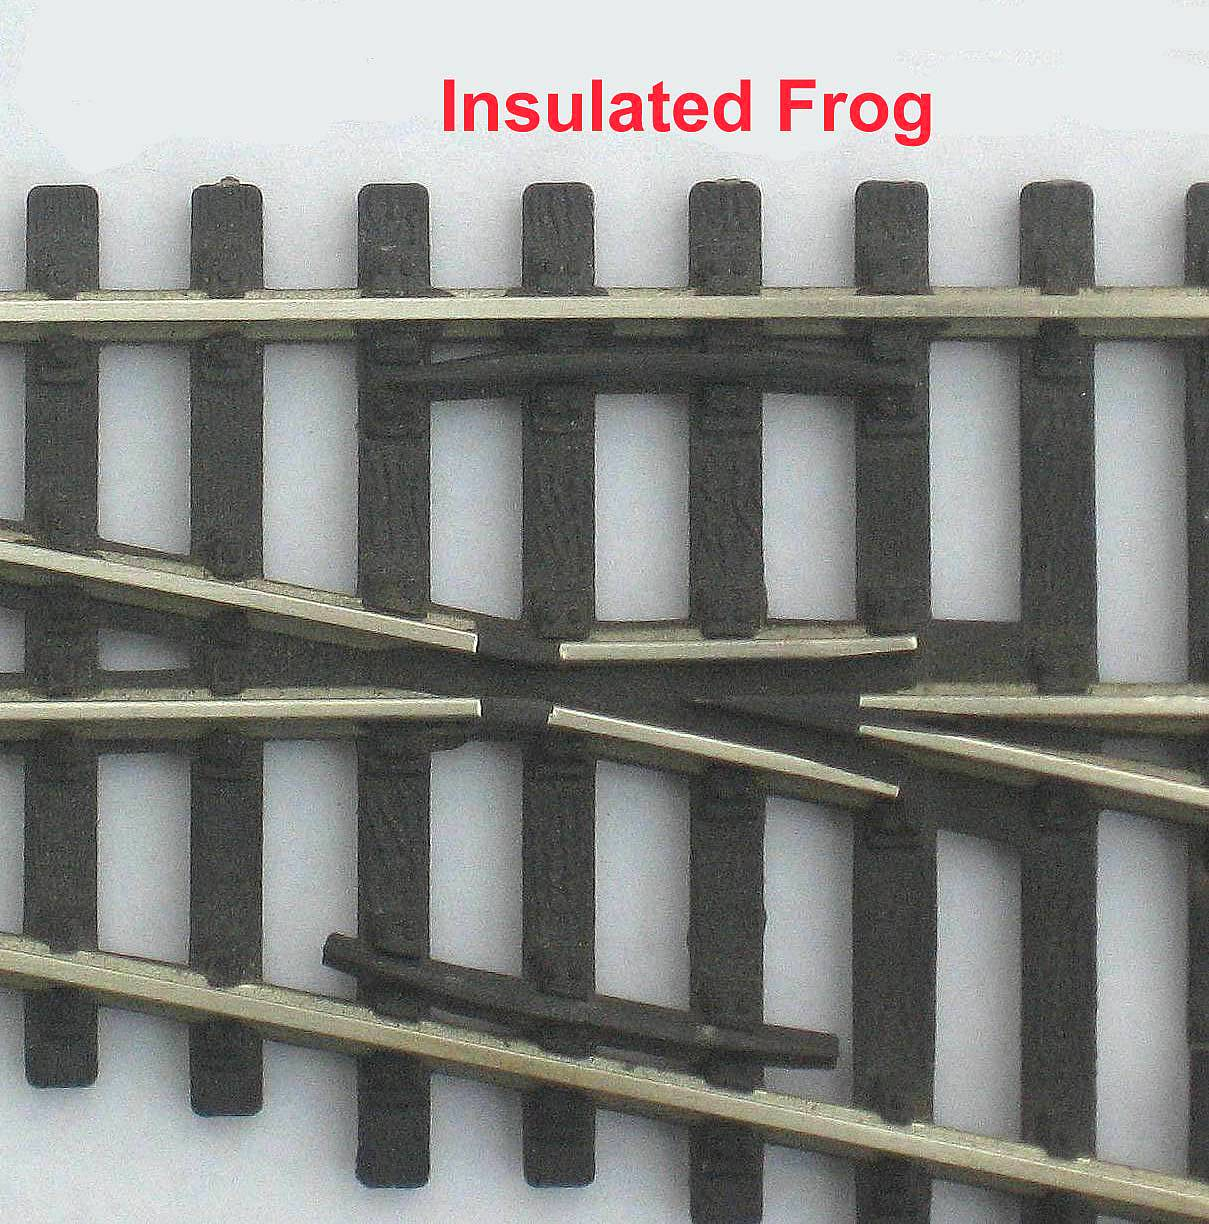 Insulated frog point